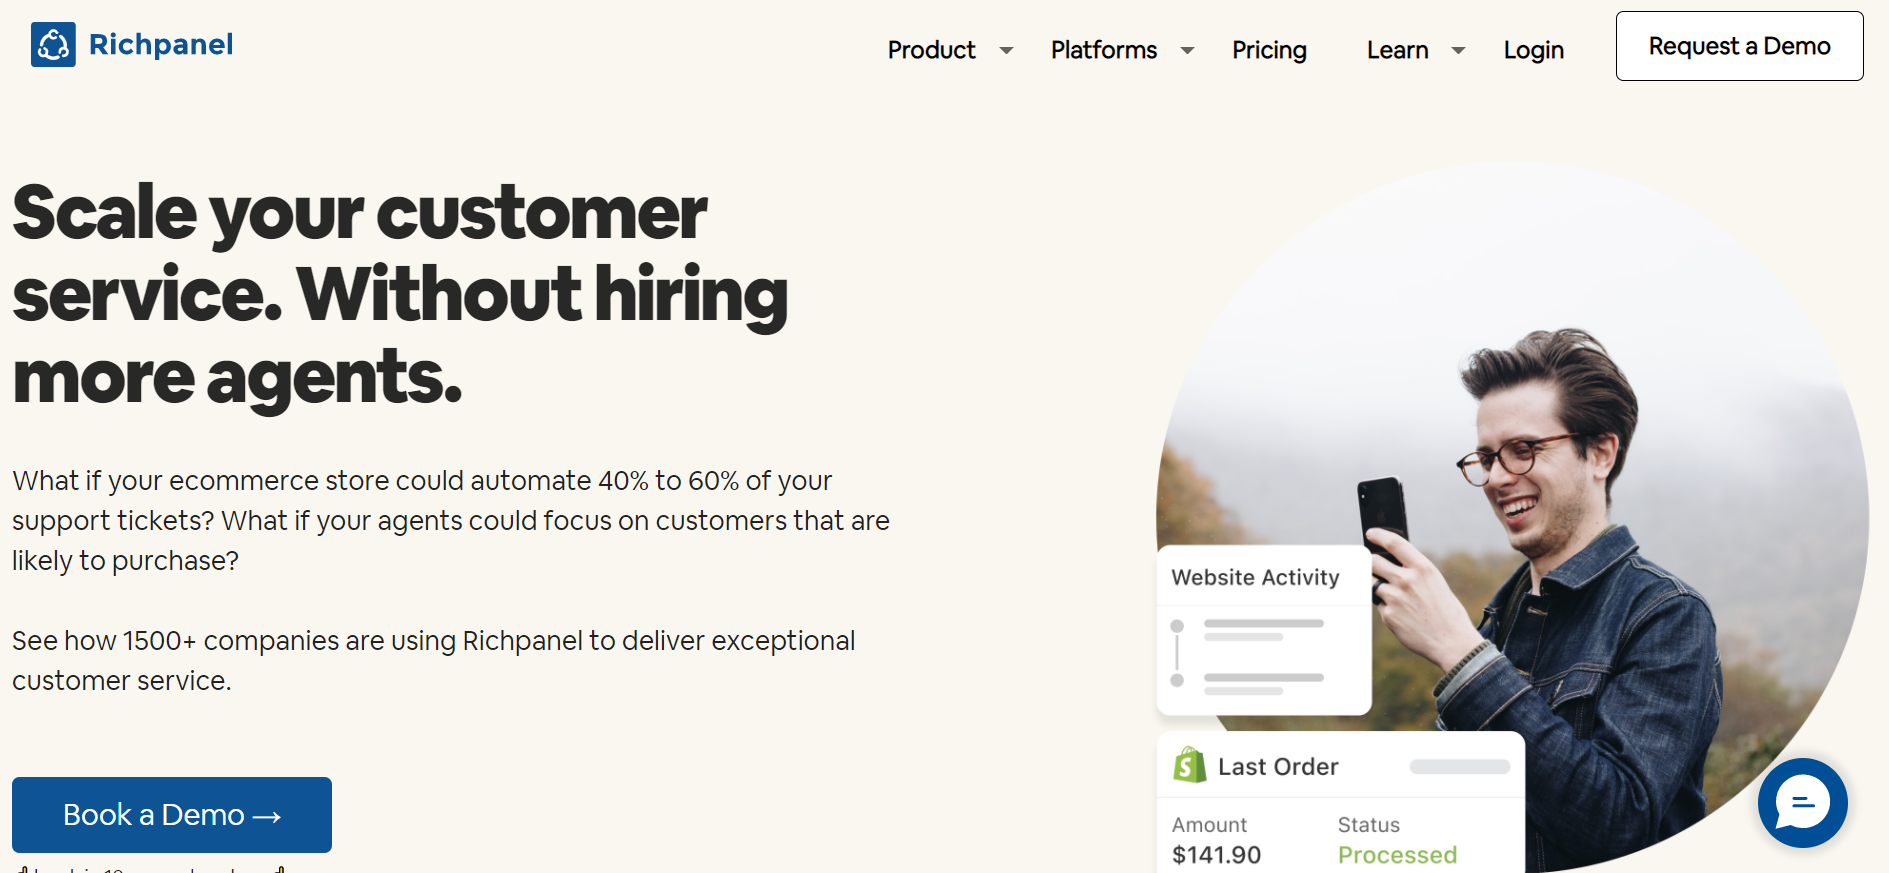 Best Help Desk Ticketing Systems   Richpanel Helpdesk & Live Chat for WooCommerce